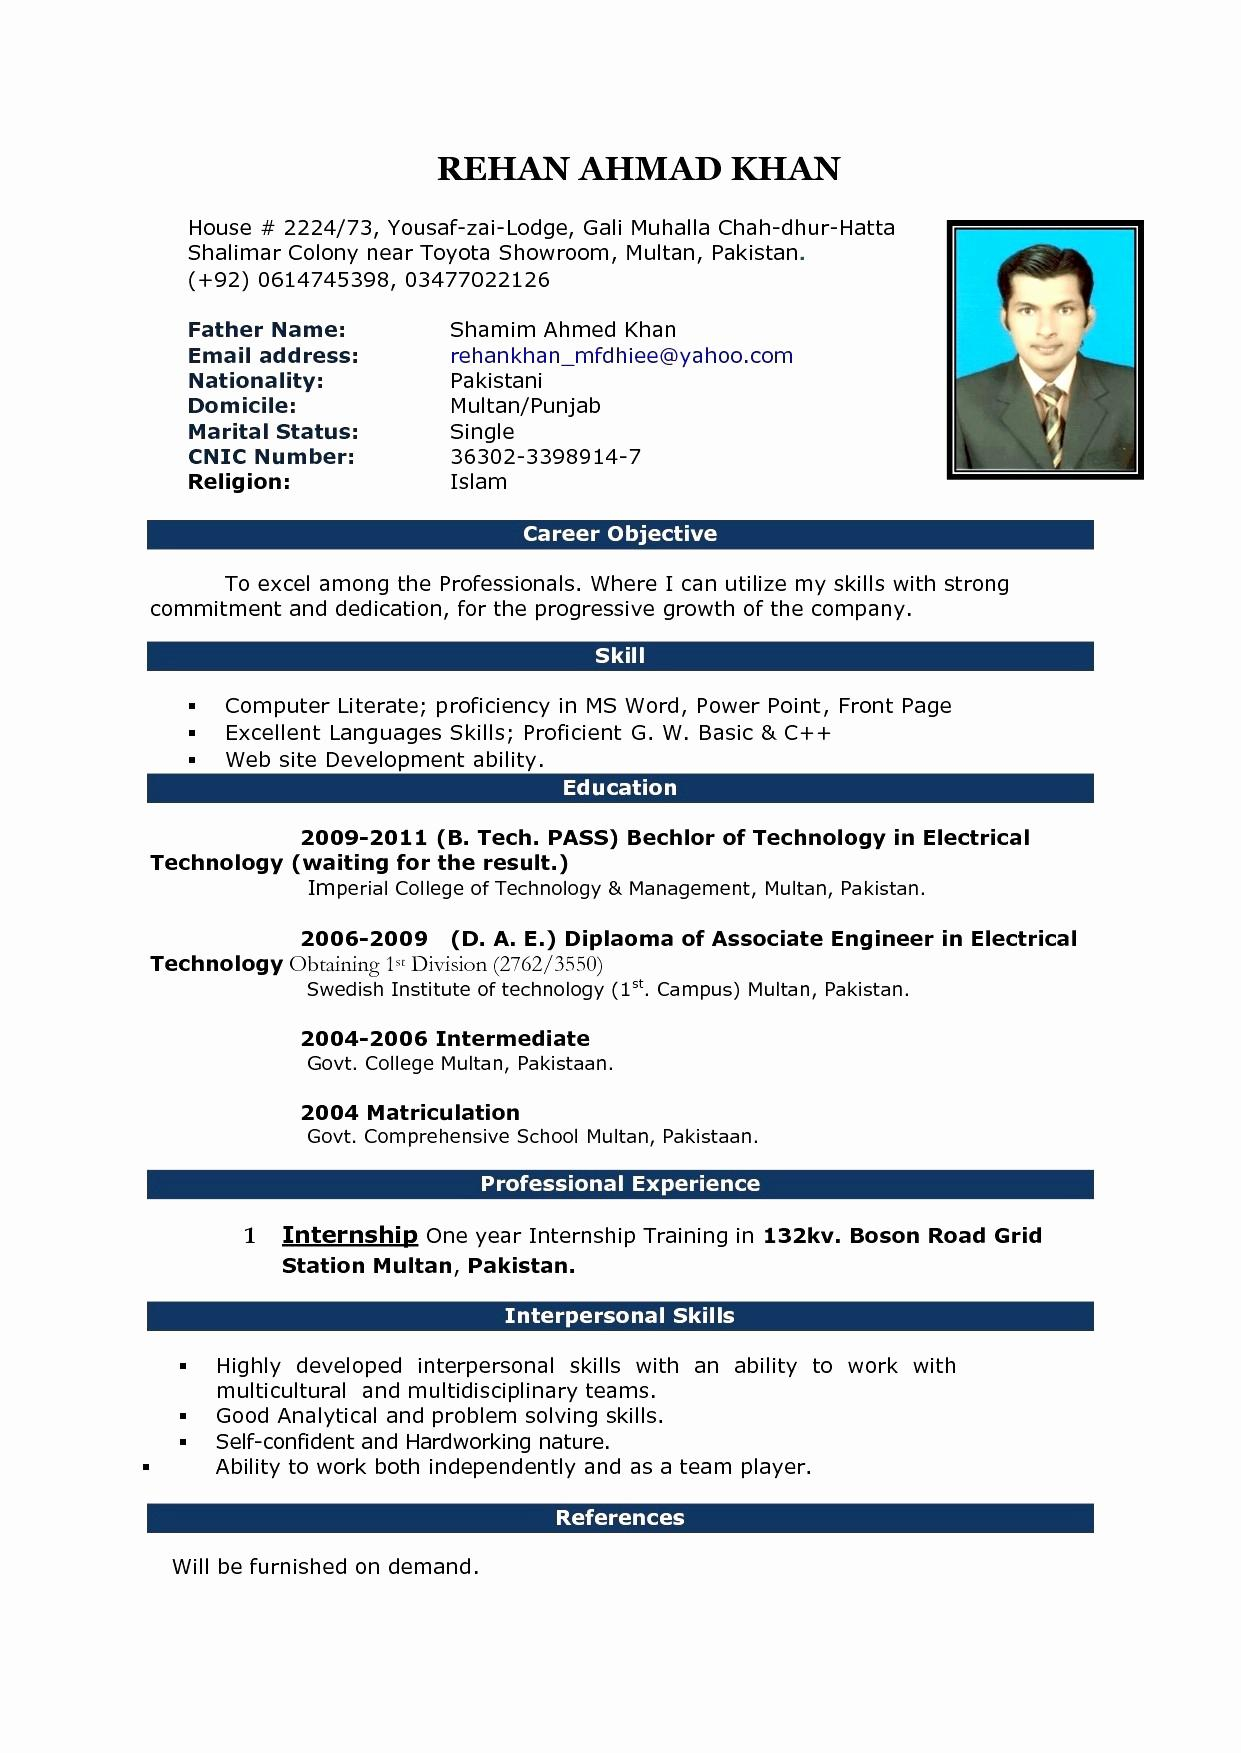 Web Designer Resume - Web Designer Resume Word format Inspirational Best Pr Resume